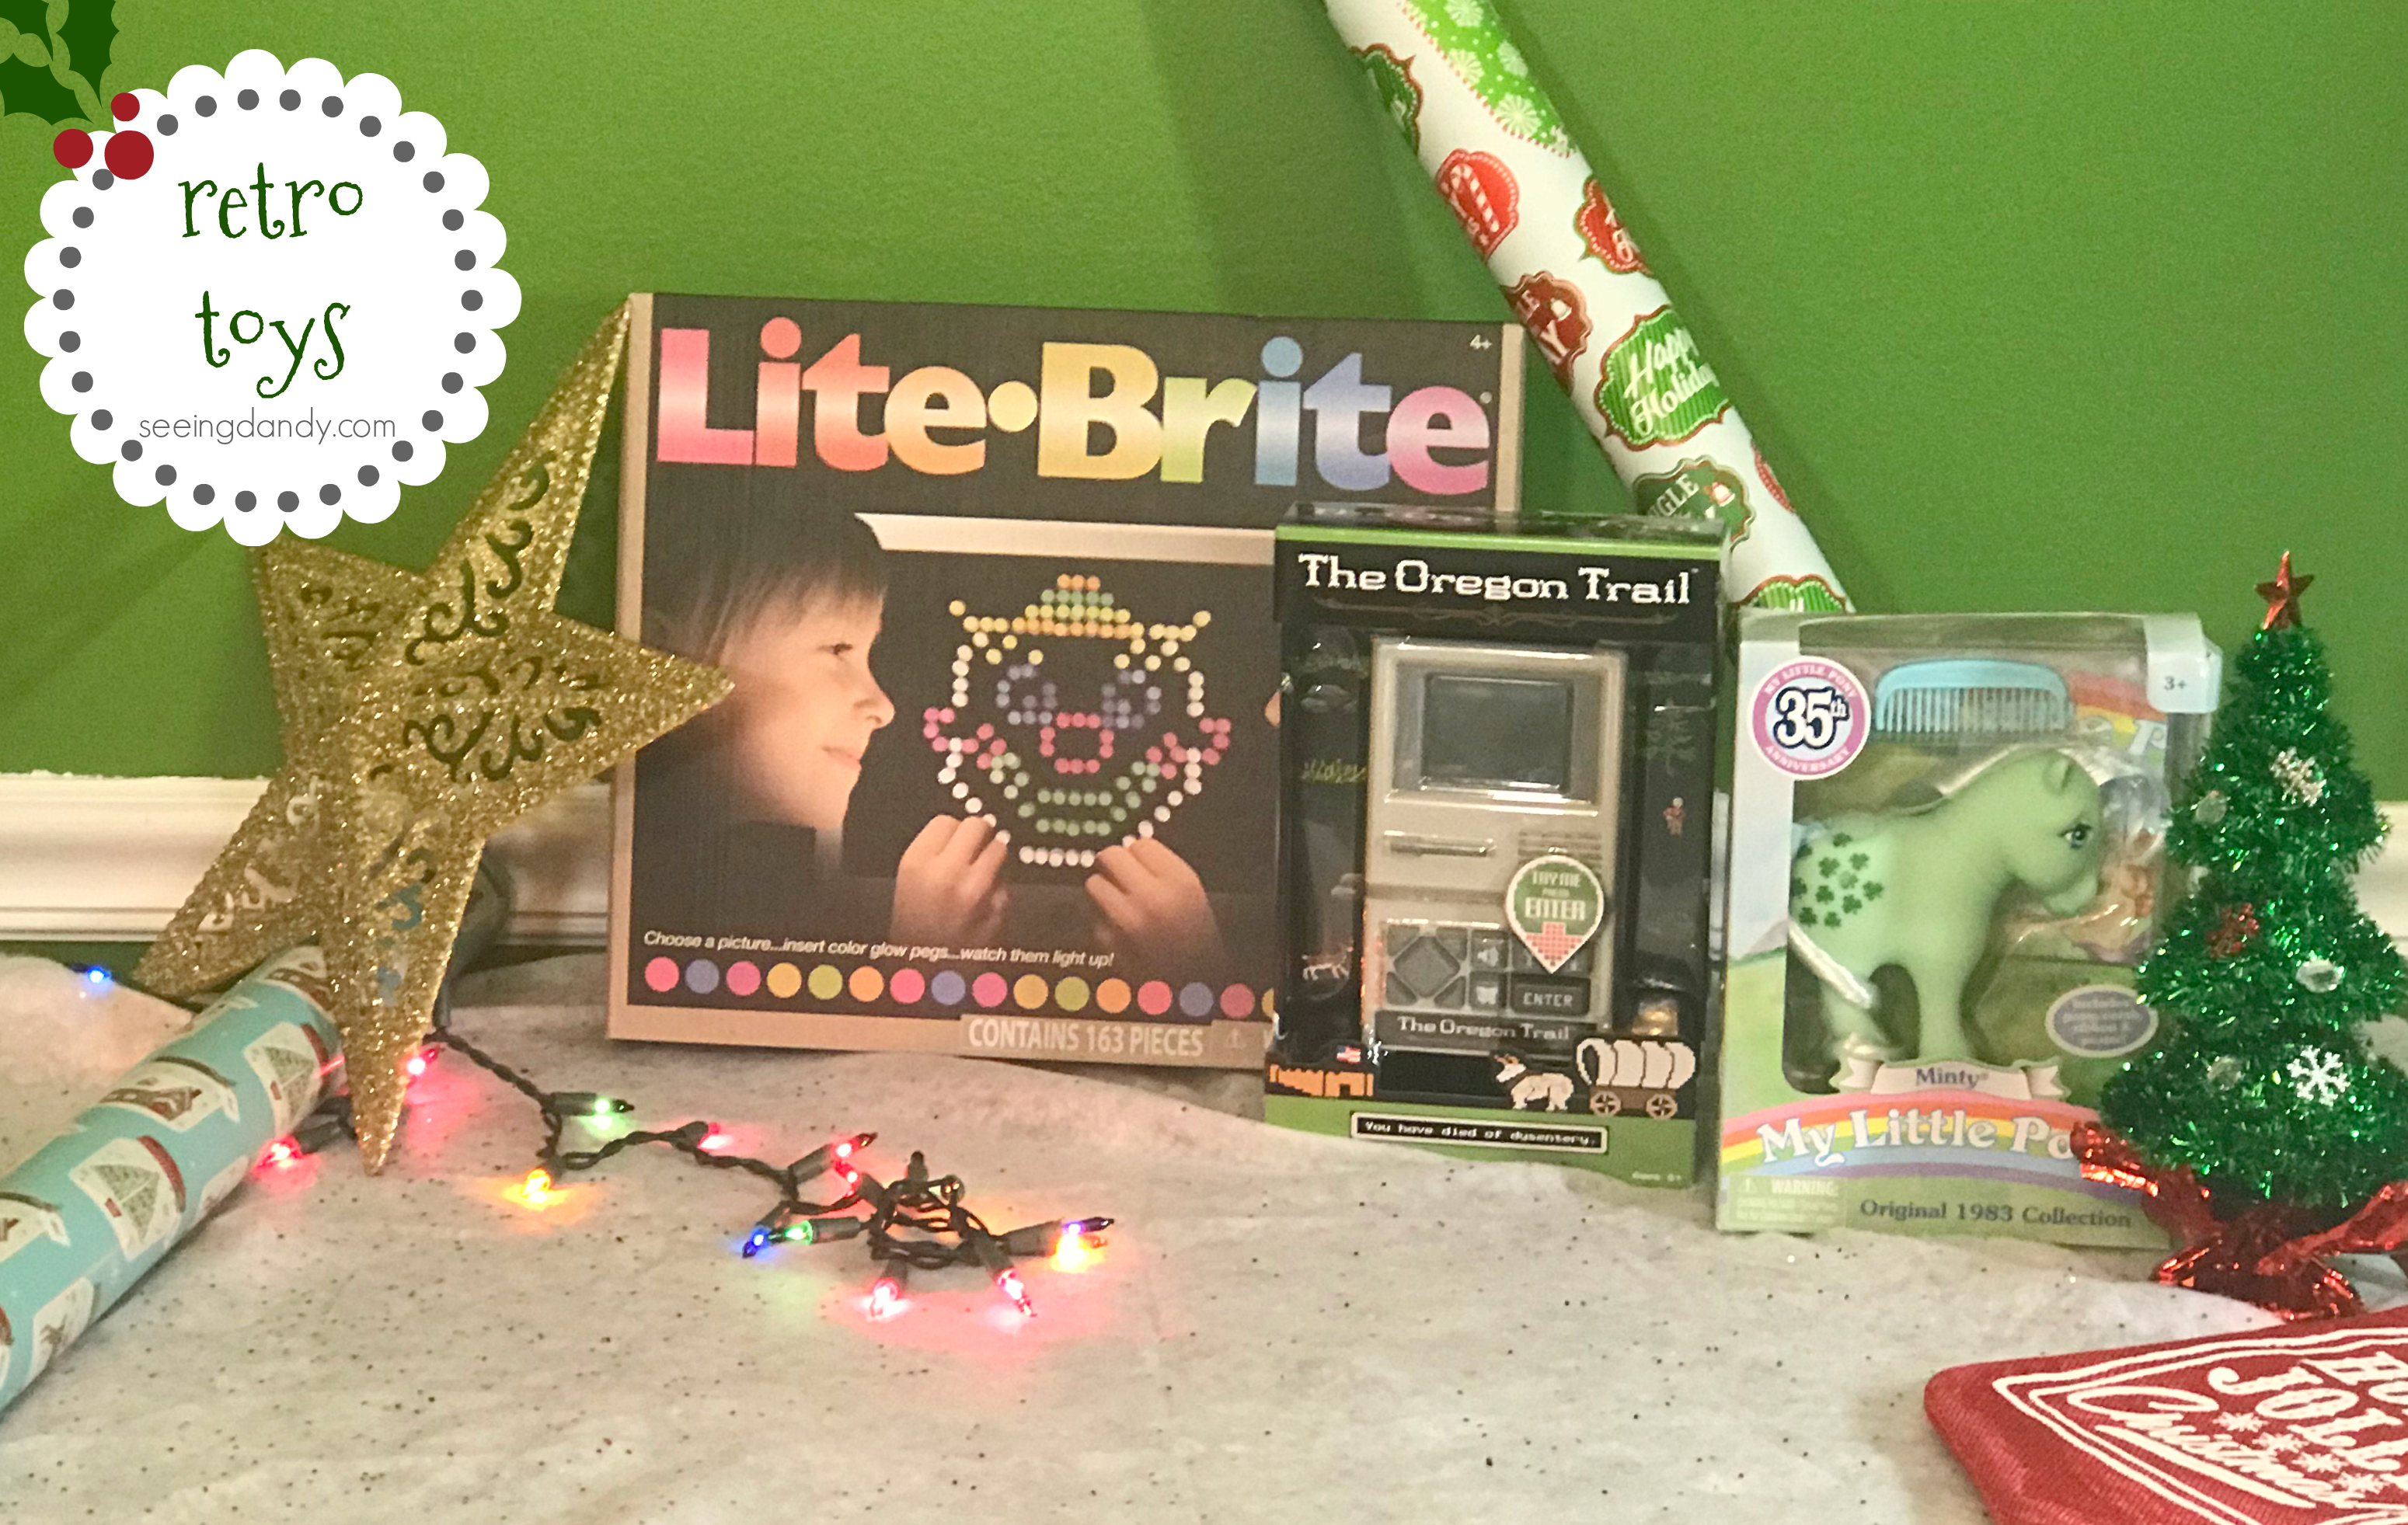 Retro toys Lite Brite, The Oregon Trail game and My Little Pony 35th Anniversary holiday toys.